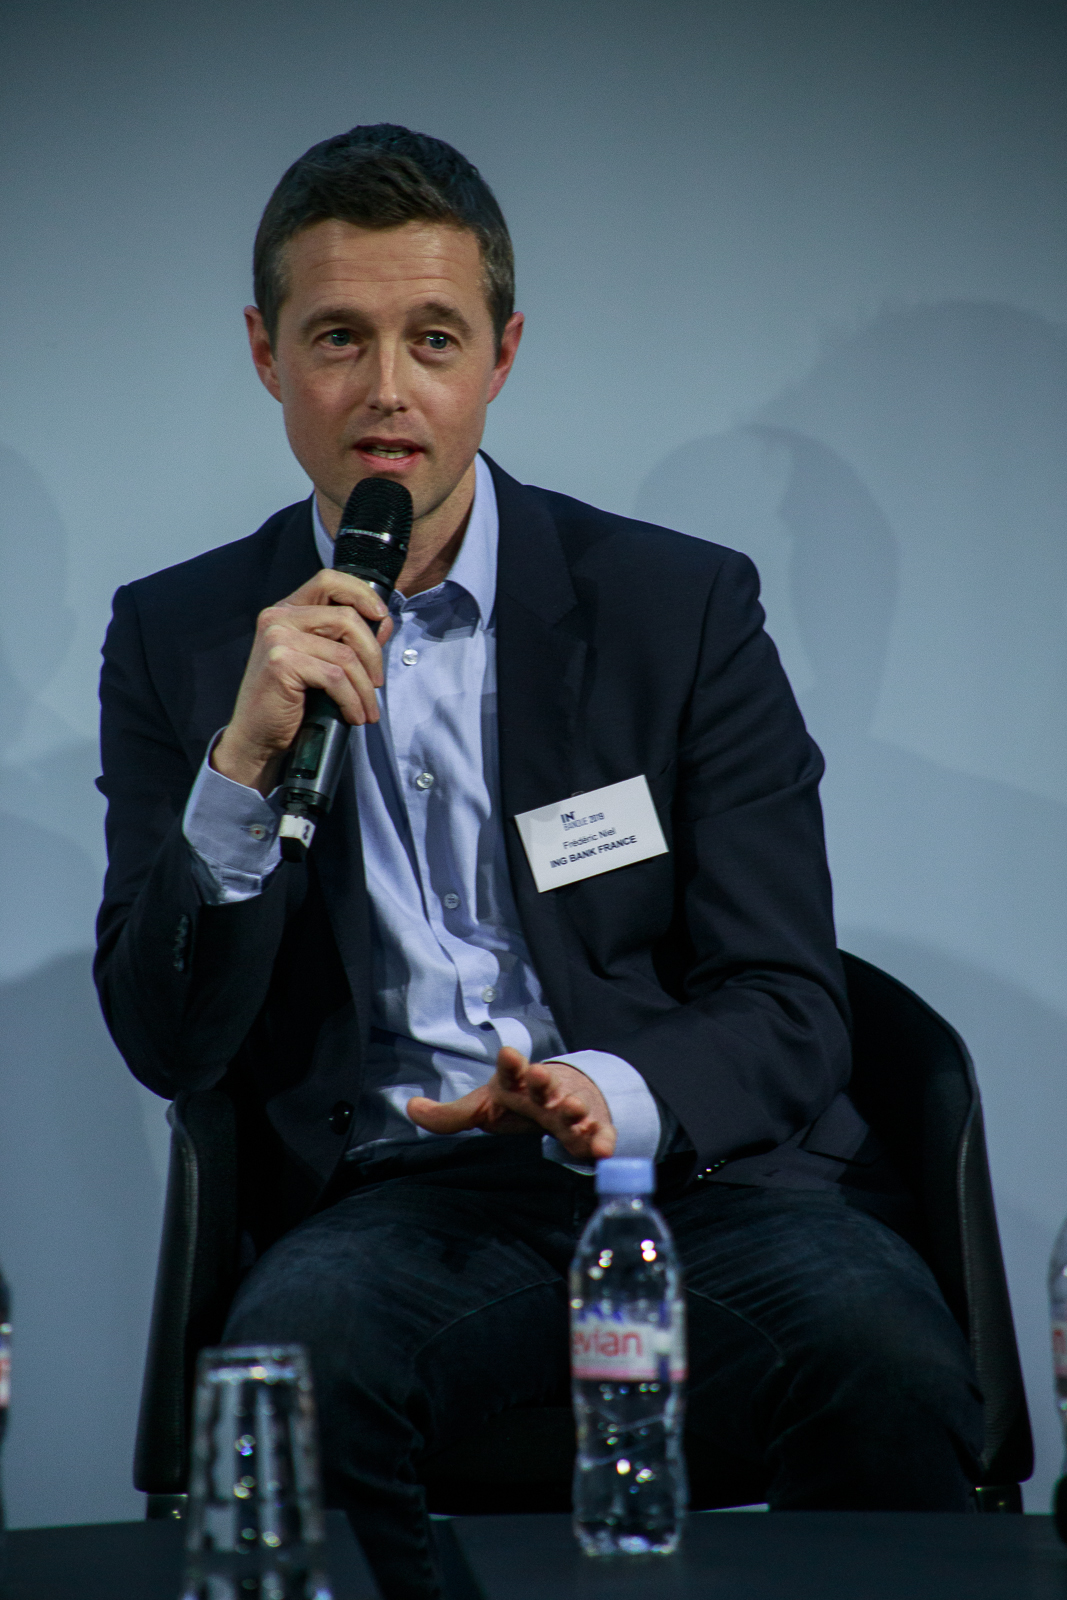 Frédéric Niel (ING Bank) IN BANQUE 2019 - Crédit photo : Guillermo Gomez